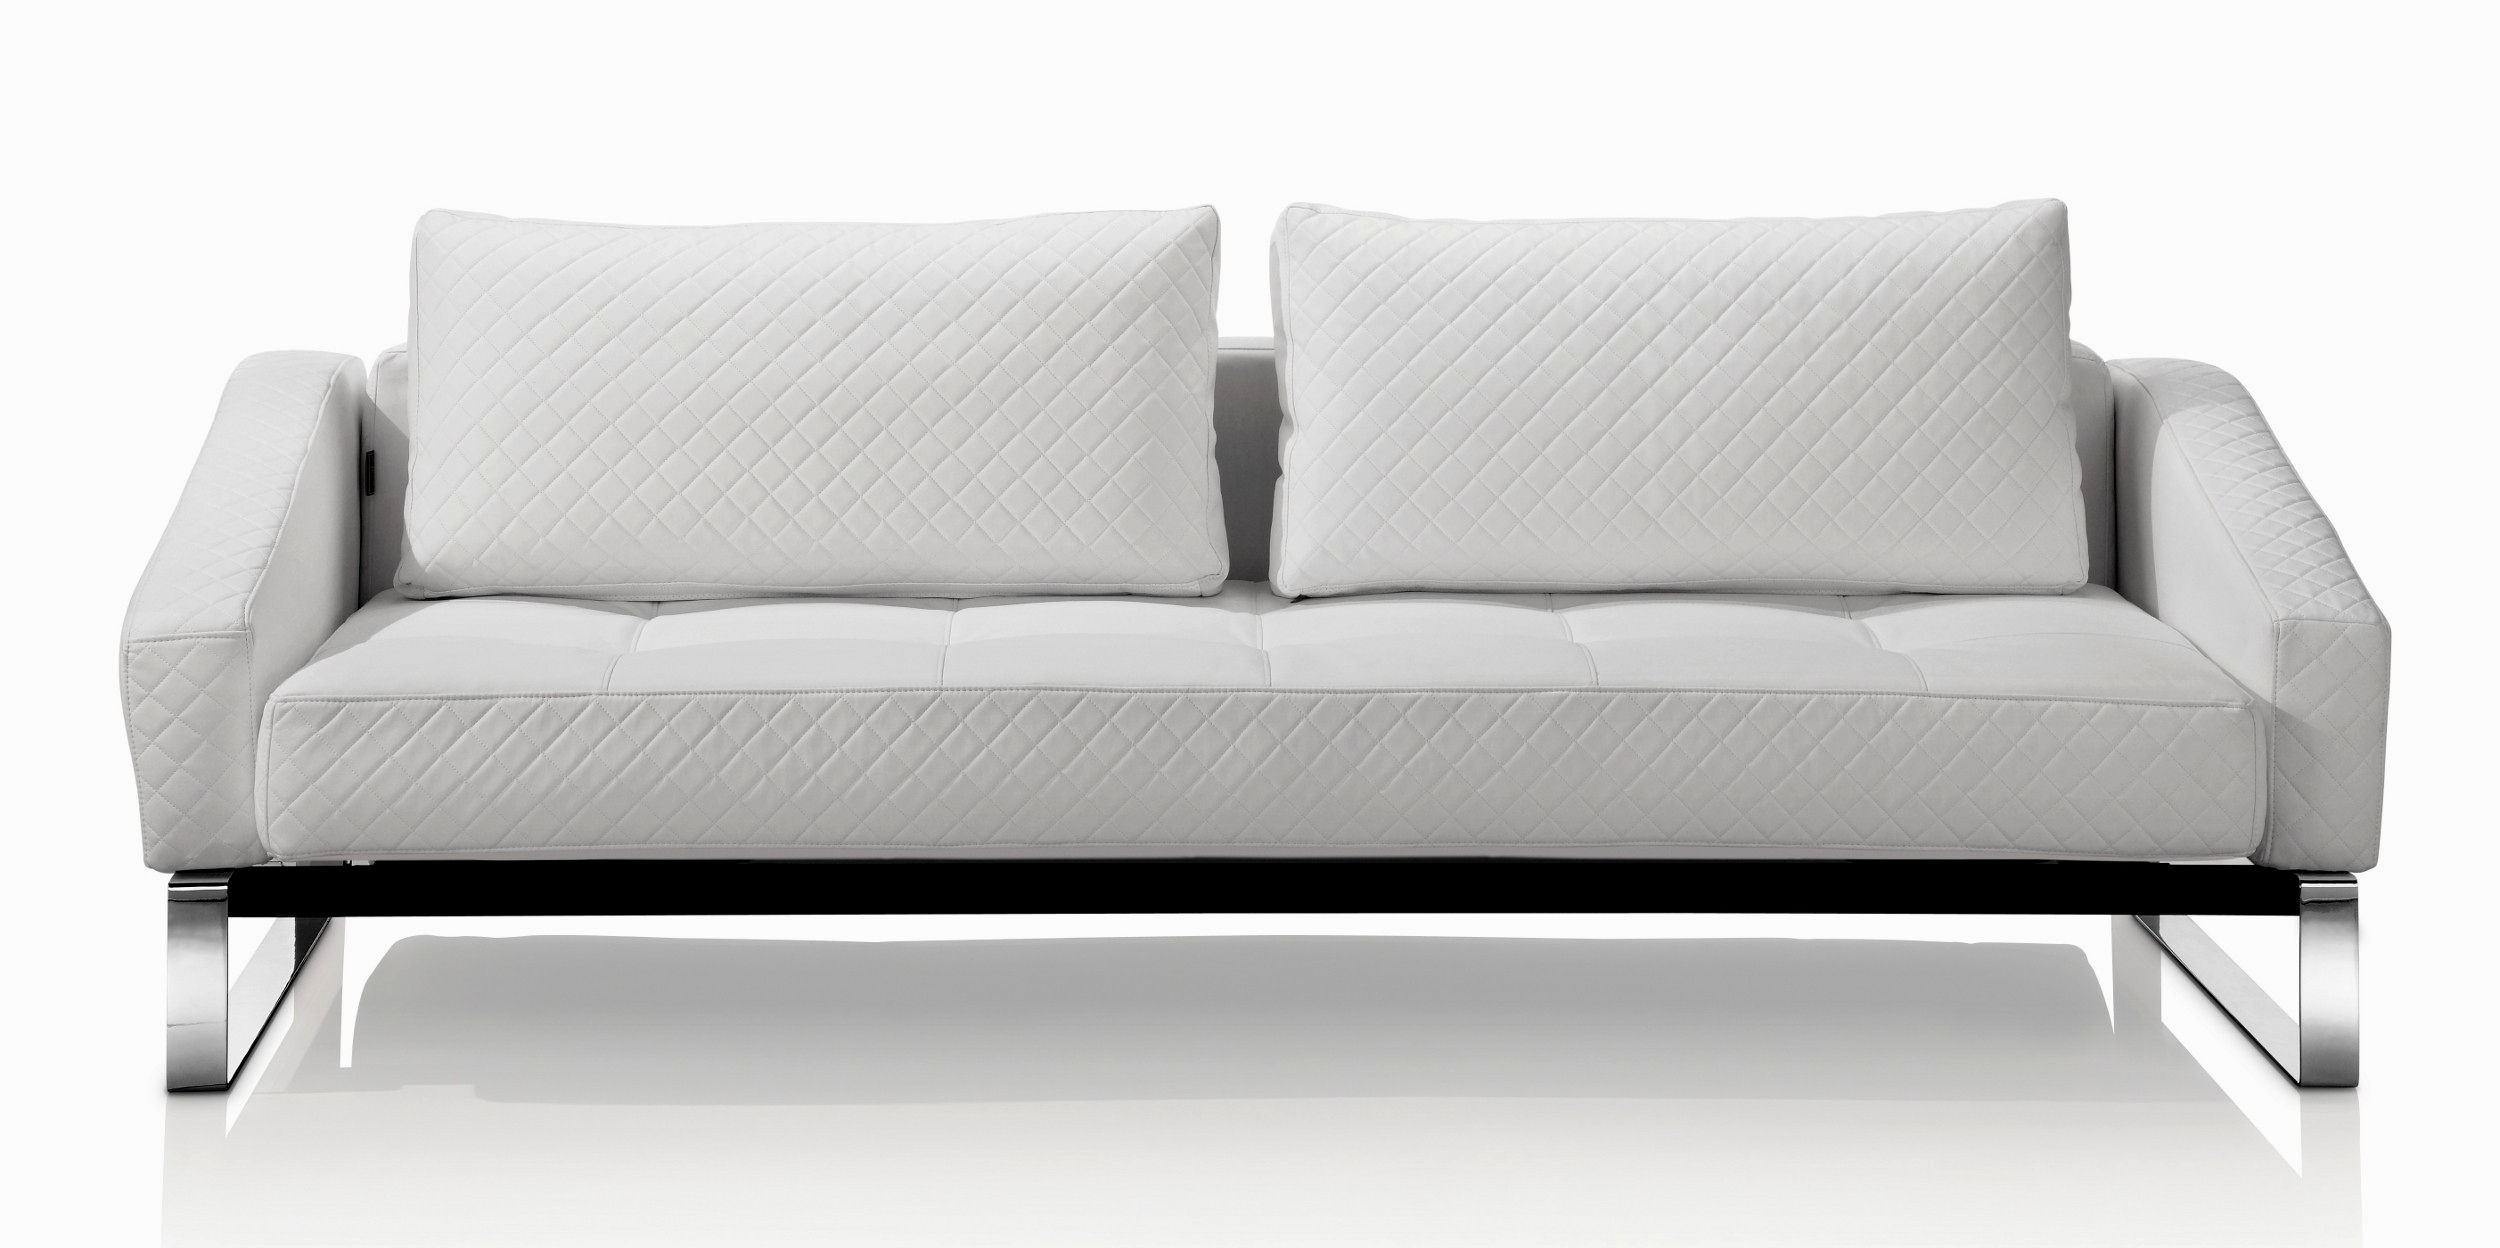 stunning white leather sofas gallery-Stunning White Leather sofas Photo